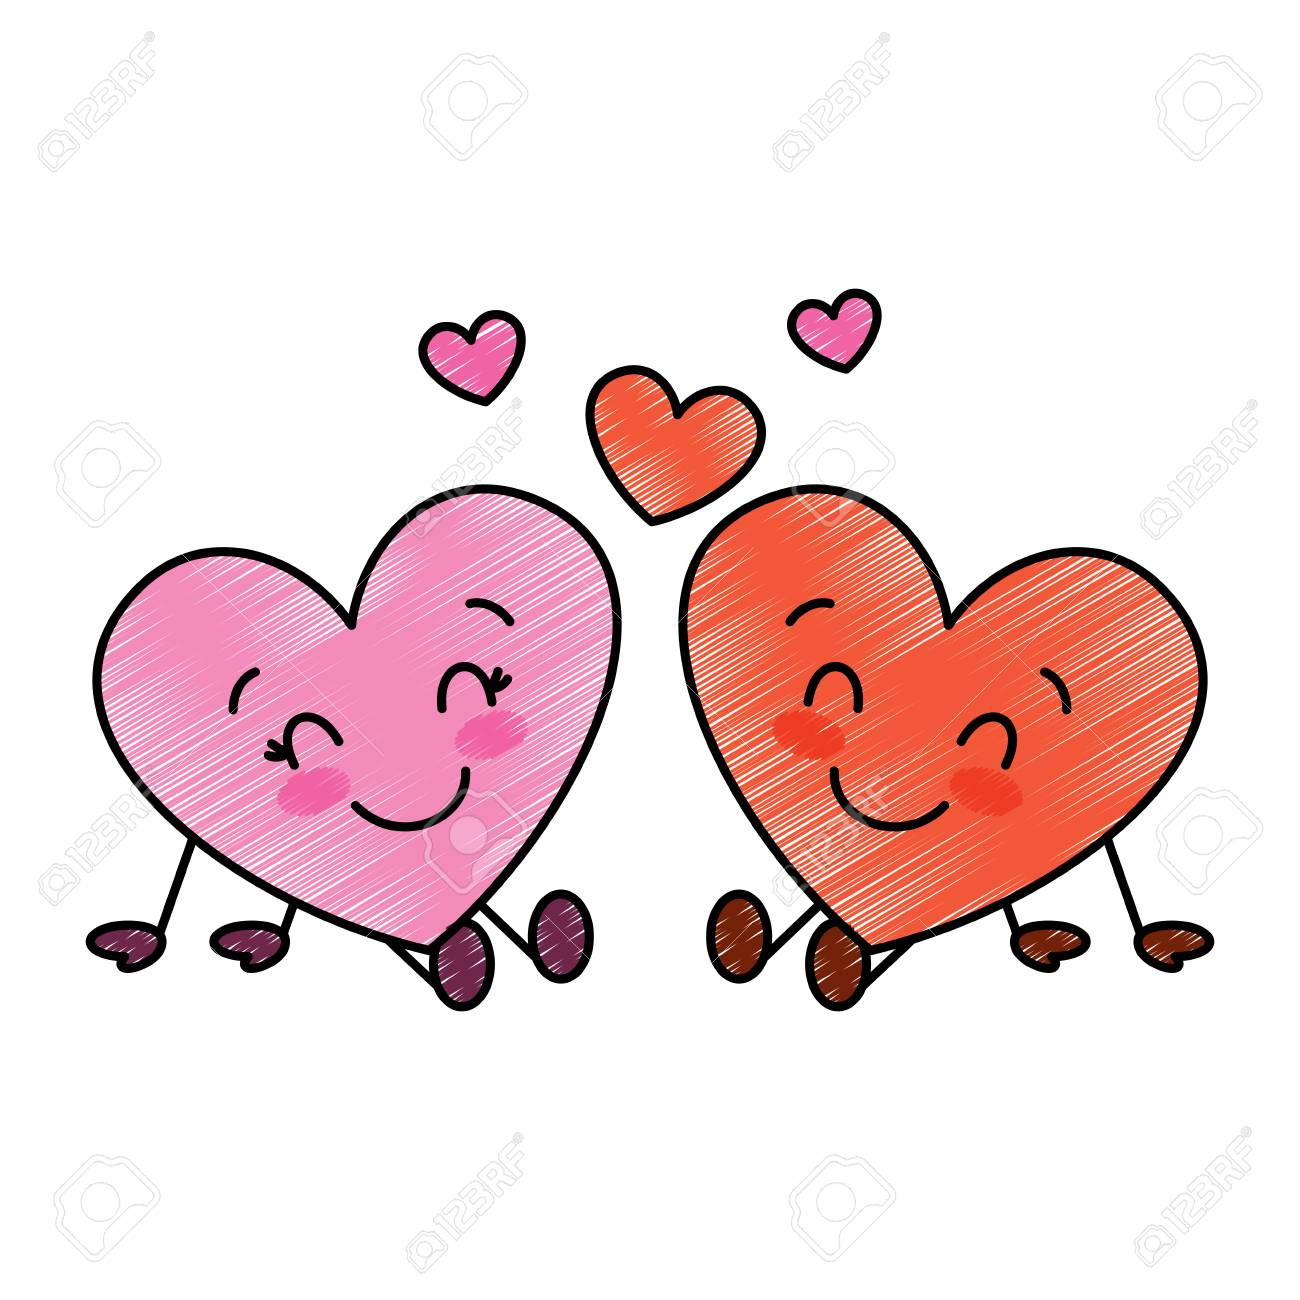 Cute hearts couple sitting cartoon love relationship vector illustration drawing image stock vector 95713527